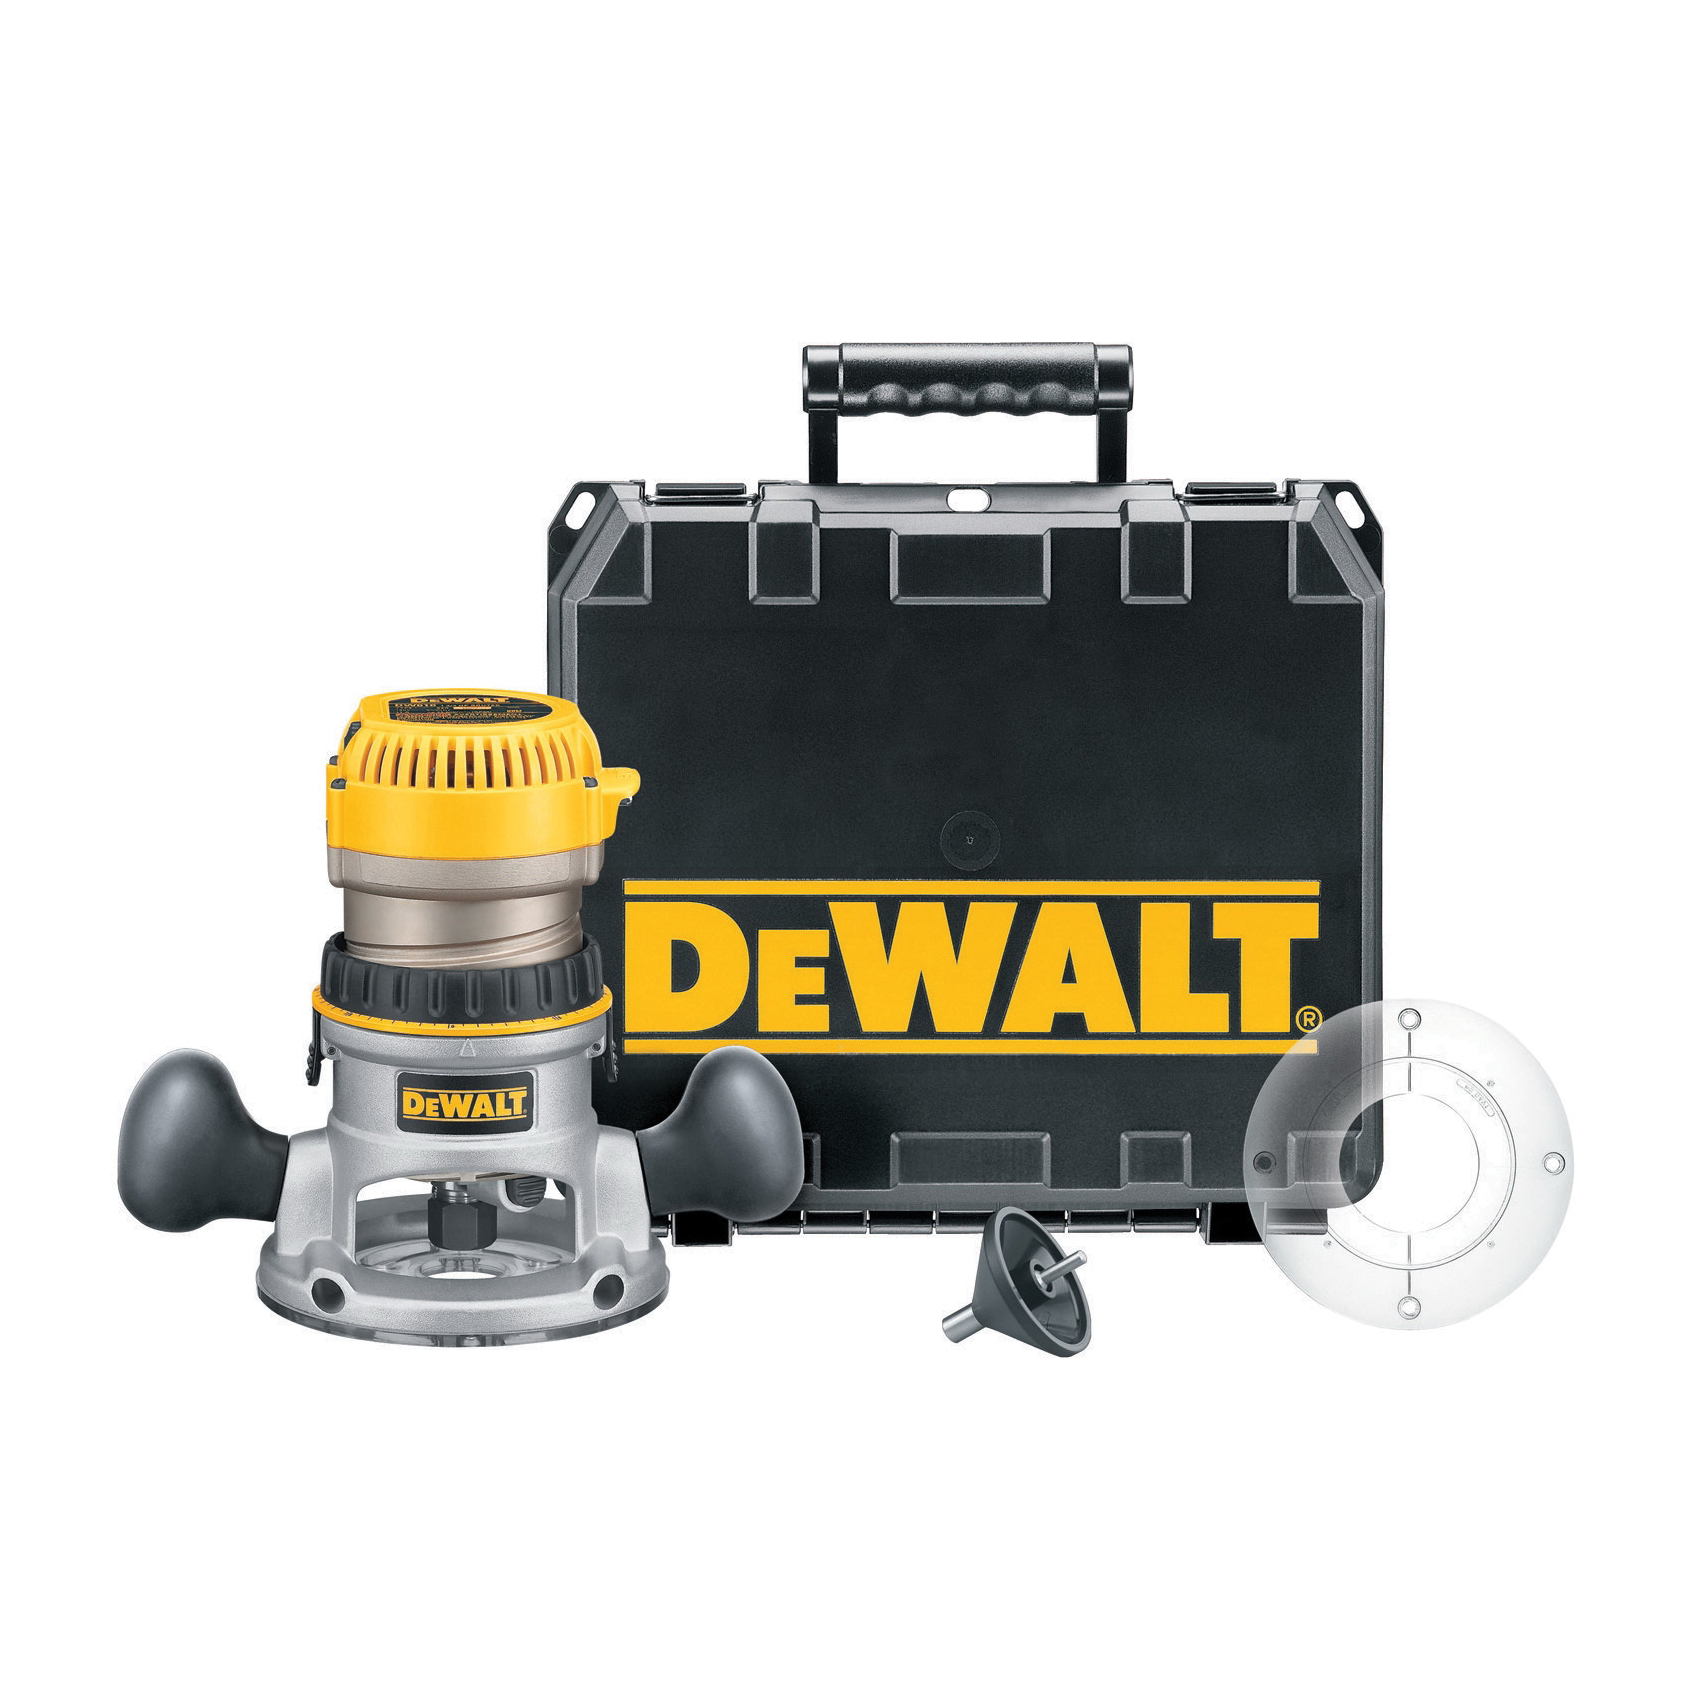 DeWALT® DW618K EVS Mid Size Soft Start Fixed Base Router Kit, 1/4 in, 1/2 in Chuck, 8000 to 24000 rpm, 2.25 hp, 120 VAC, Toggle Switch